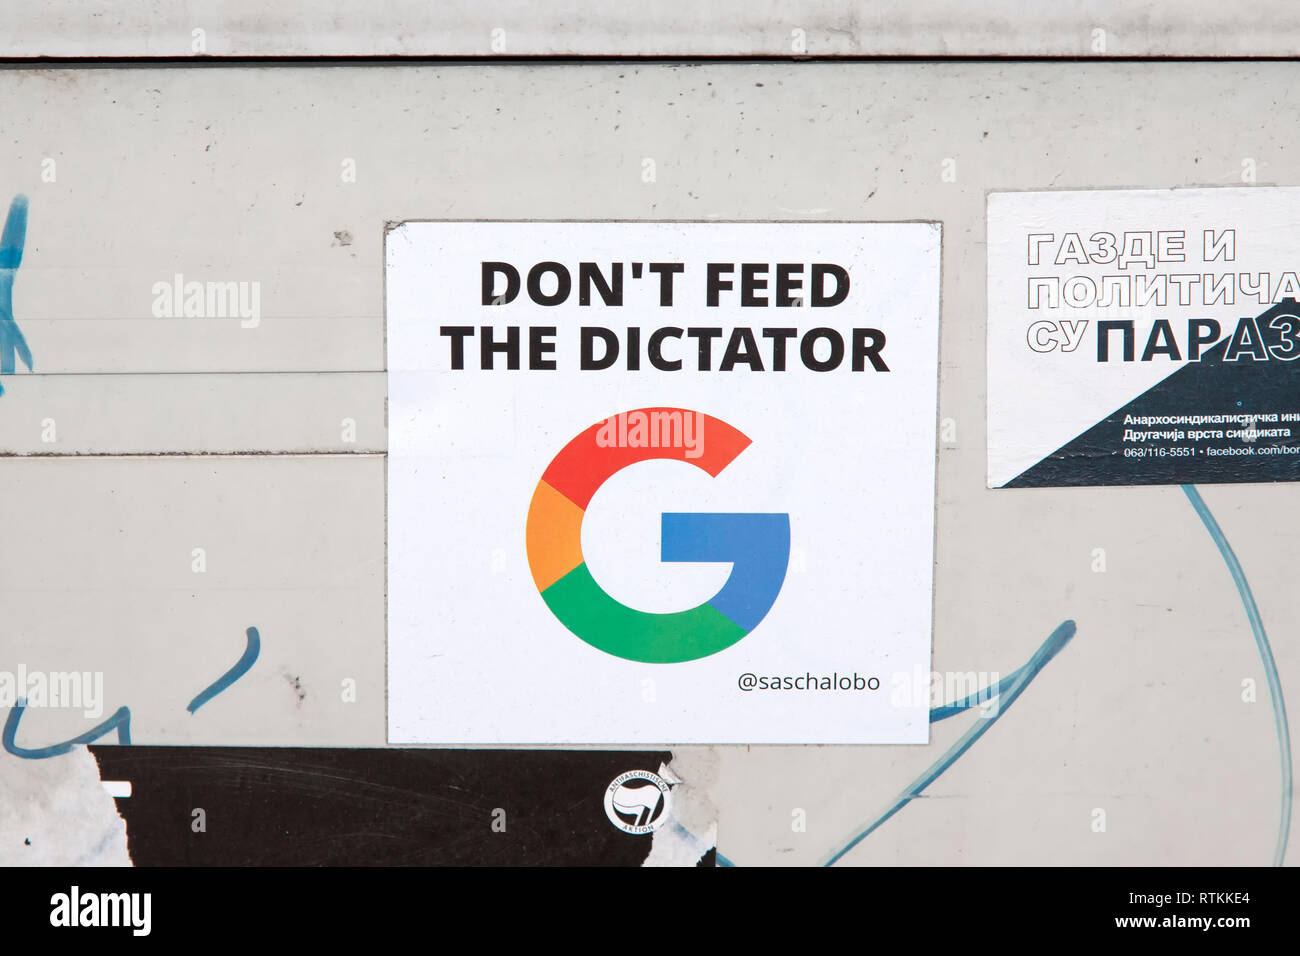 Sticker in Berlin, Don't feed the dictator, Germany - Stock Image